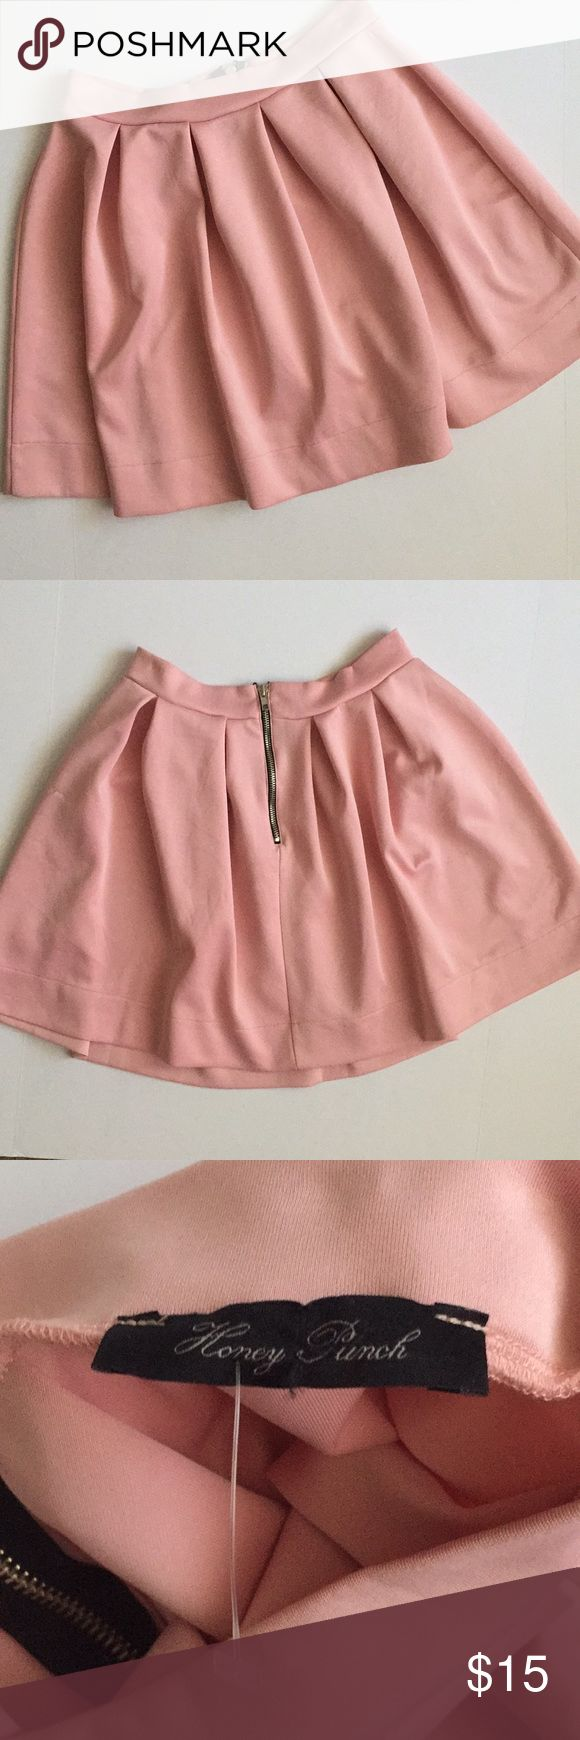 "Pink pleated mini skirt by Honey Punch Girly pink pleated skirt with black and silver statement zipper down the back.   ❗️as pictured, this item is a little damaged. Small splattered stains (hard to see), pulled thread on the back, several areas of minor pilling and pulling, indentations from clothing hanger on waist❗️  Measurements are approximate:  Length- 17"" Waist- 13""  96% polyester 4% spandex  Size Large (L) Honey Punch sold by Nasty Gal Honey Punch Skirts Circle & Skater"